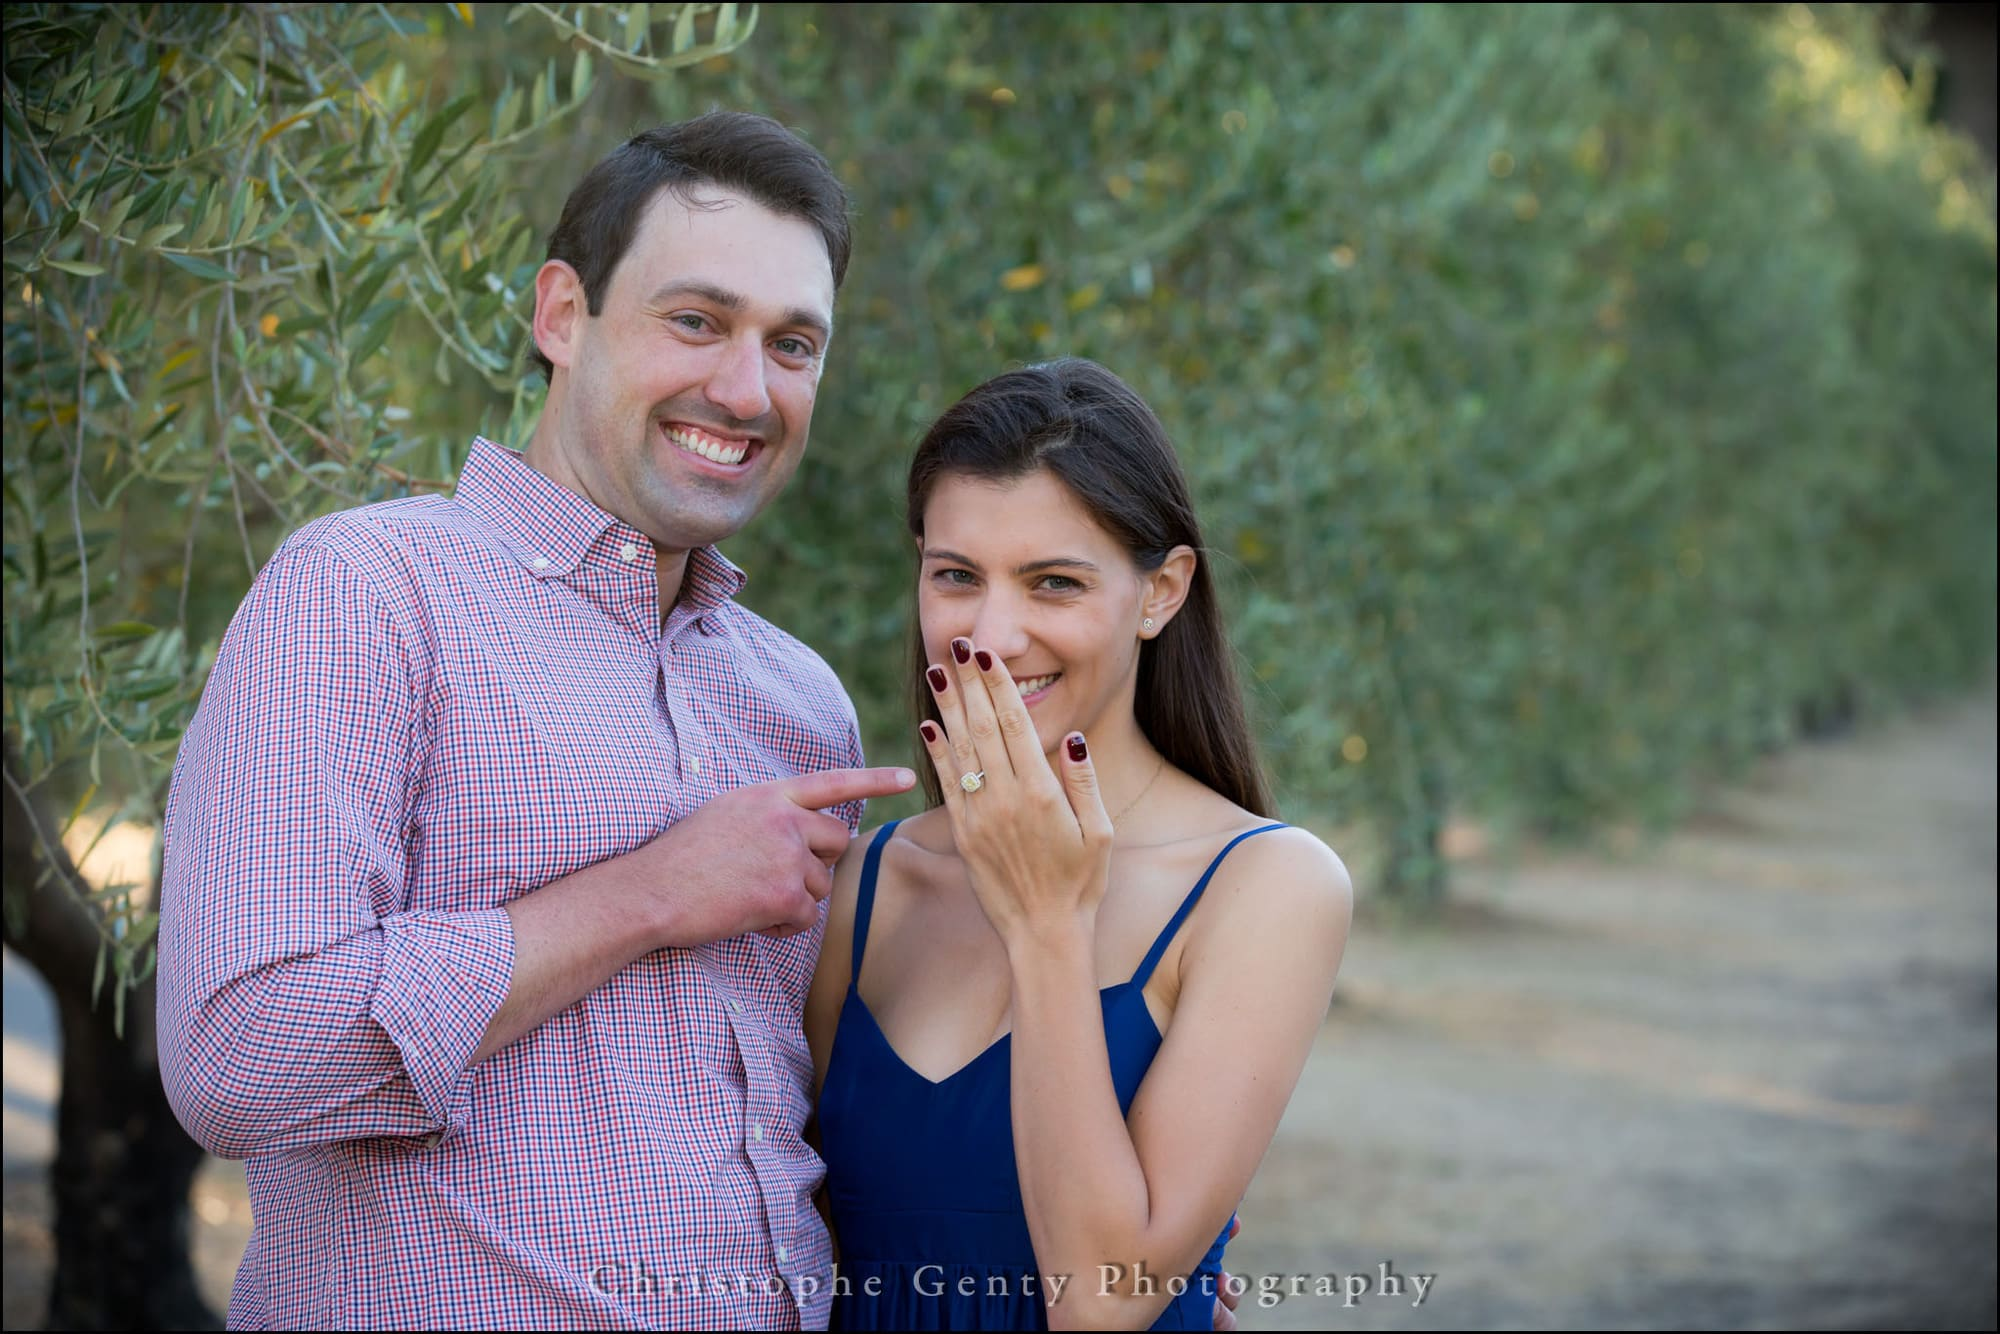 Marriage Proposal Photography at Meadowood Napa Valley